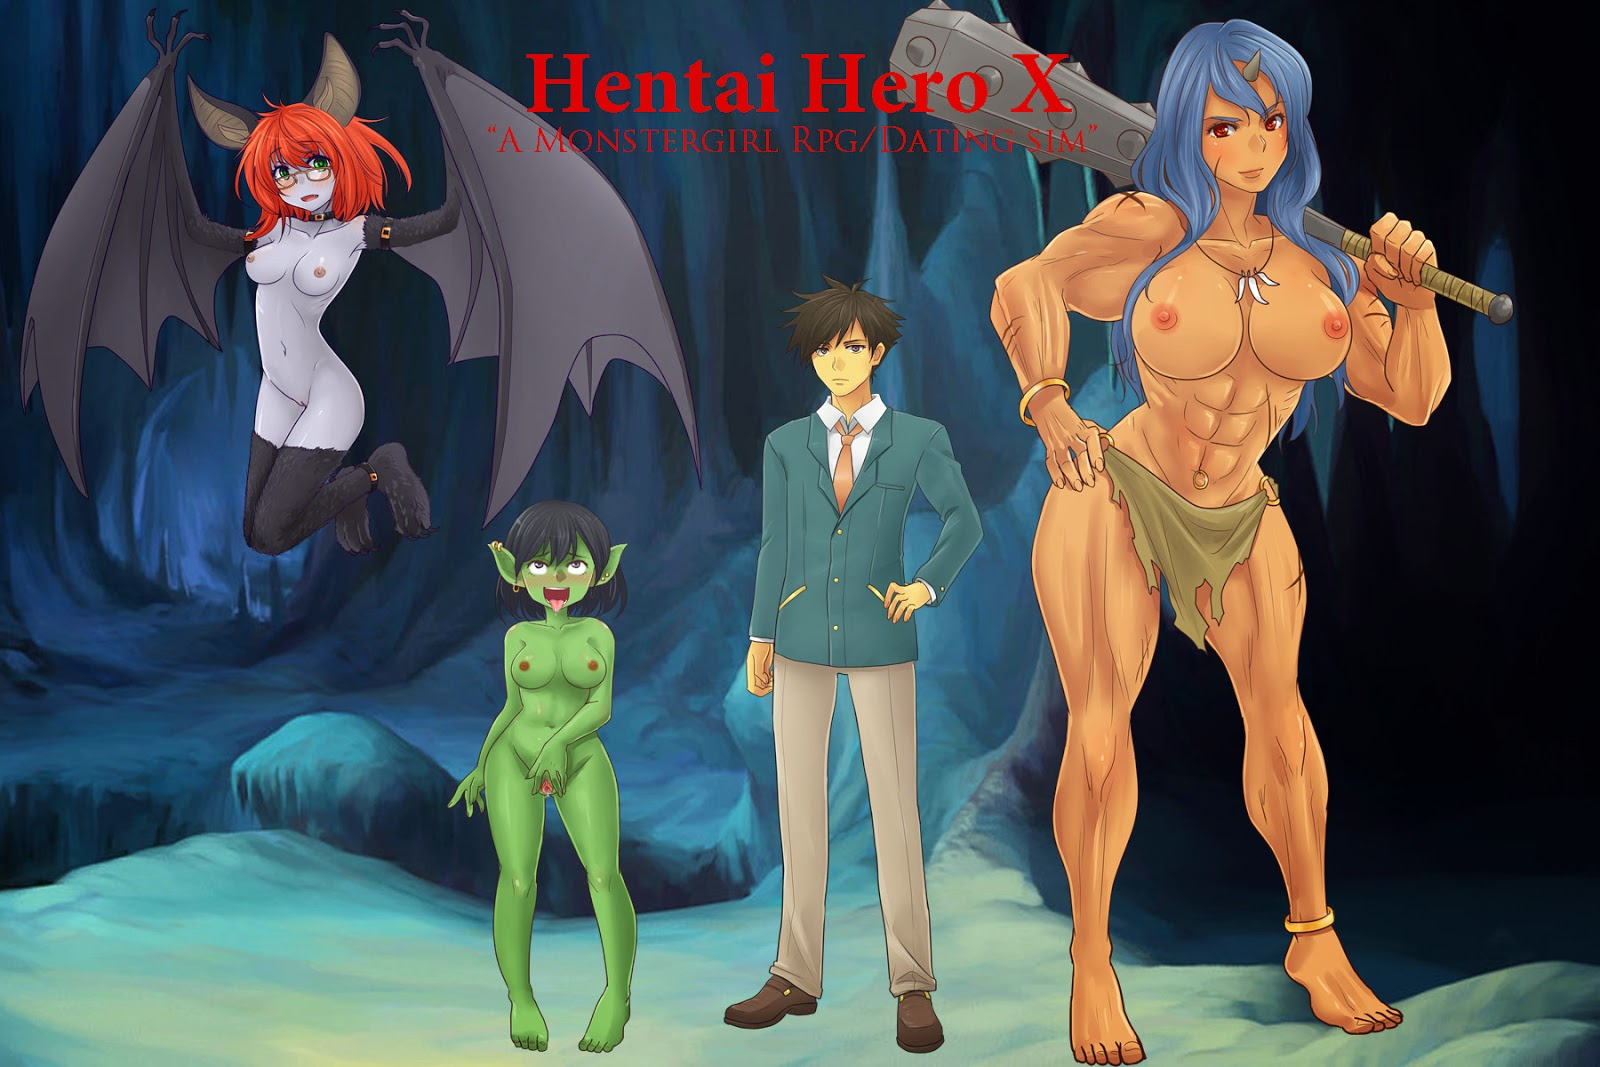 Monster hentai rpg game